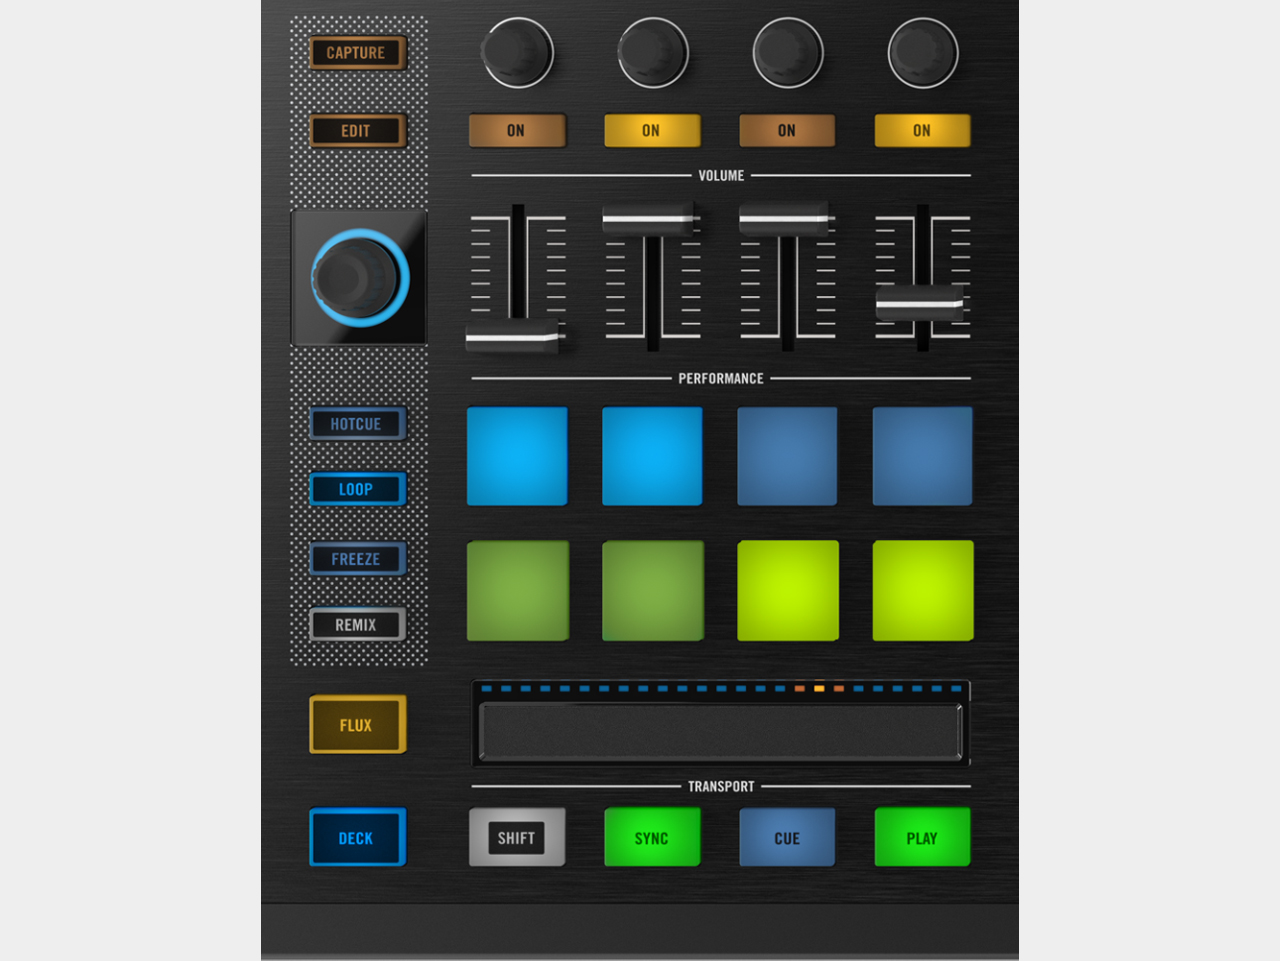 Traktor Kontrol S8 / Performance-Deck-Sektion